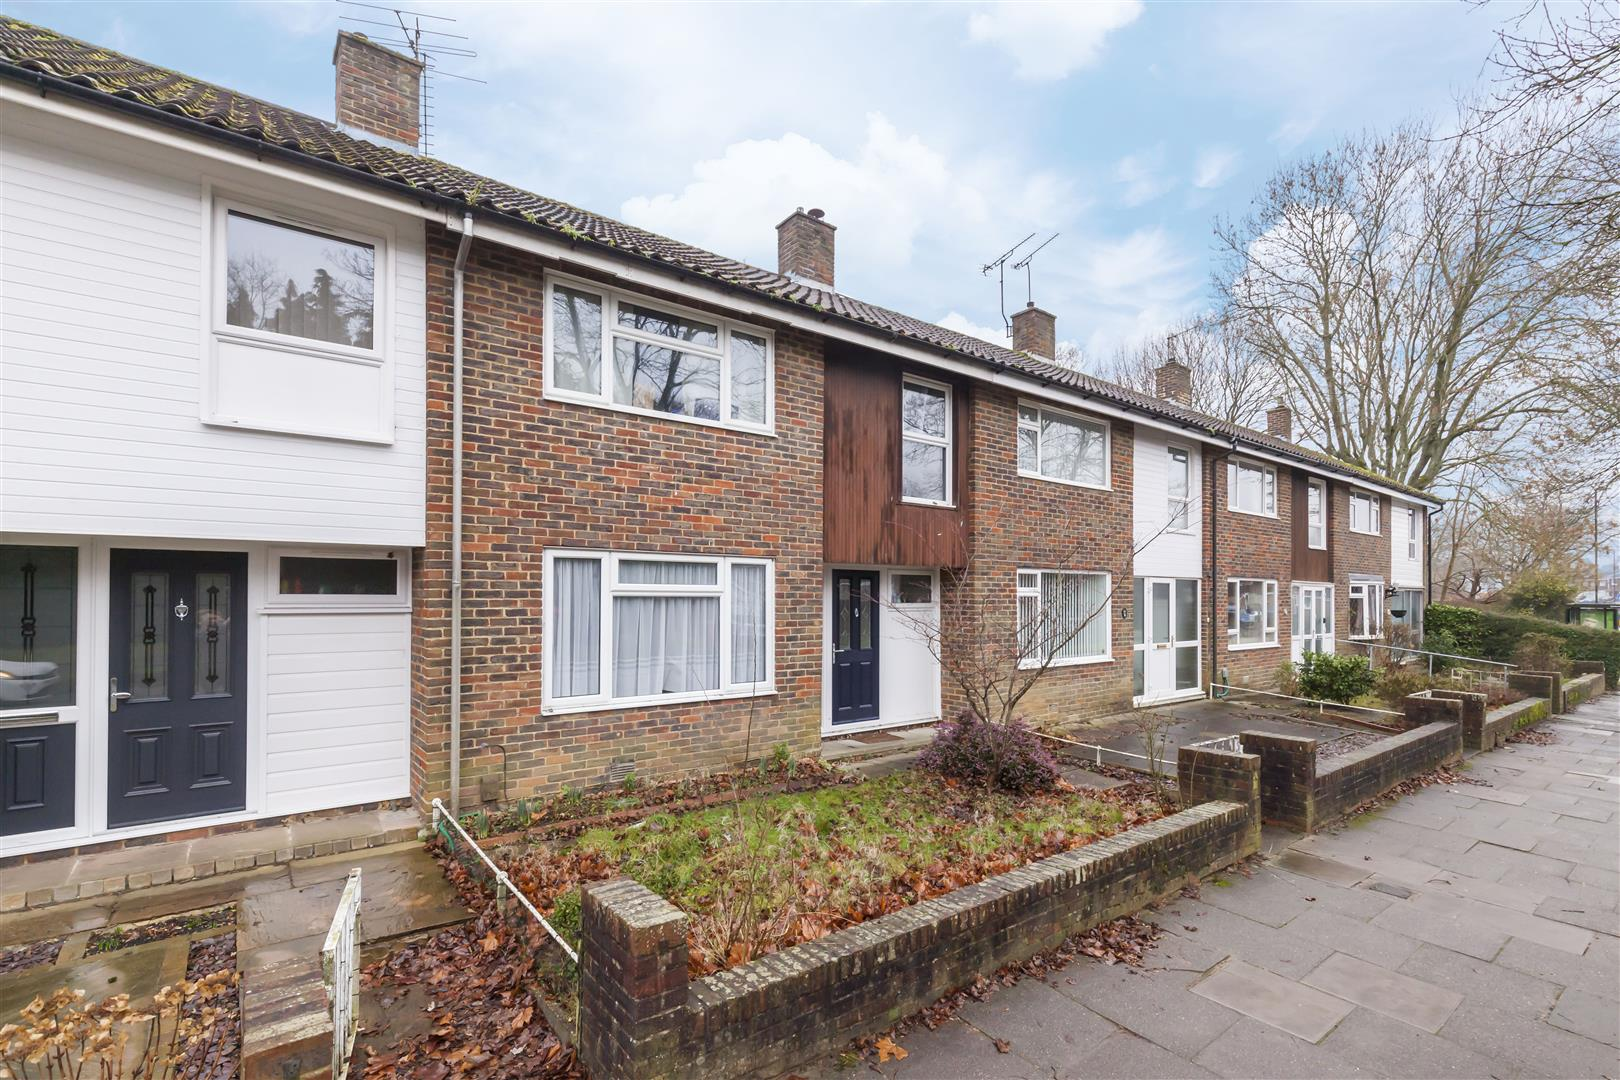 3 bed terraced-house for sale in Furnace Drive, Crawley  - Property Image 1